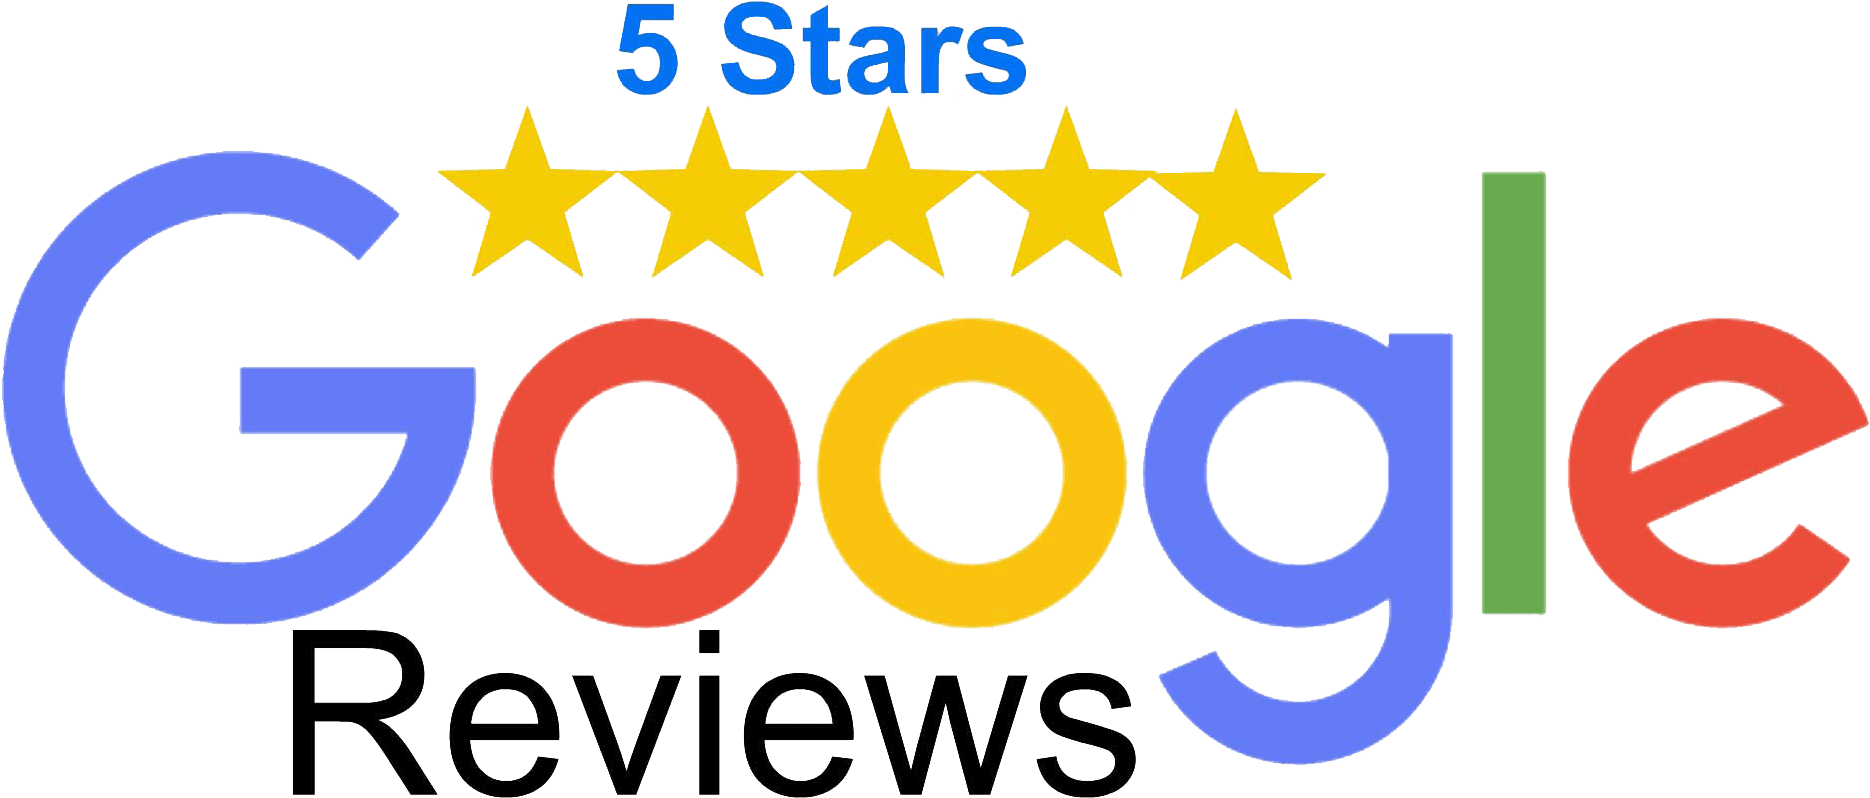 Sustainable Design Build Google Review Reviews 5-star star rating